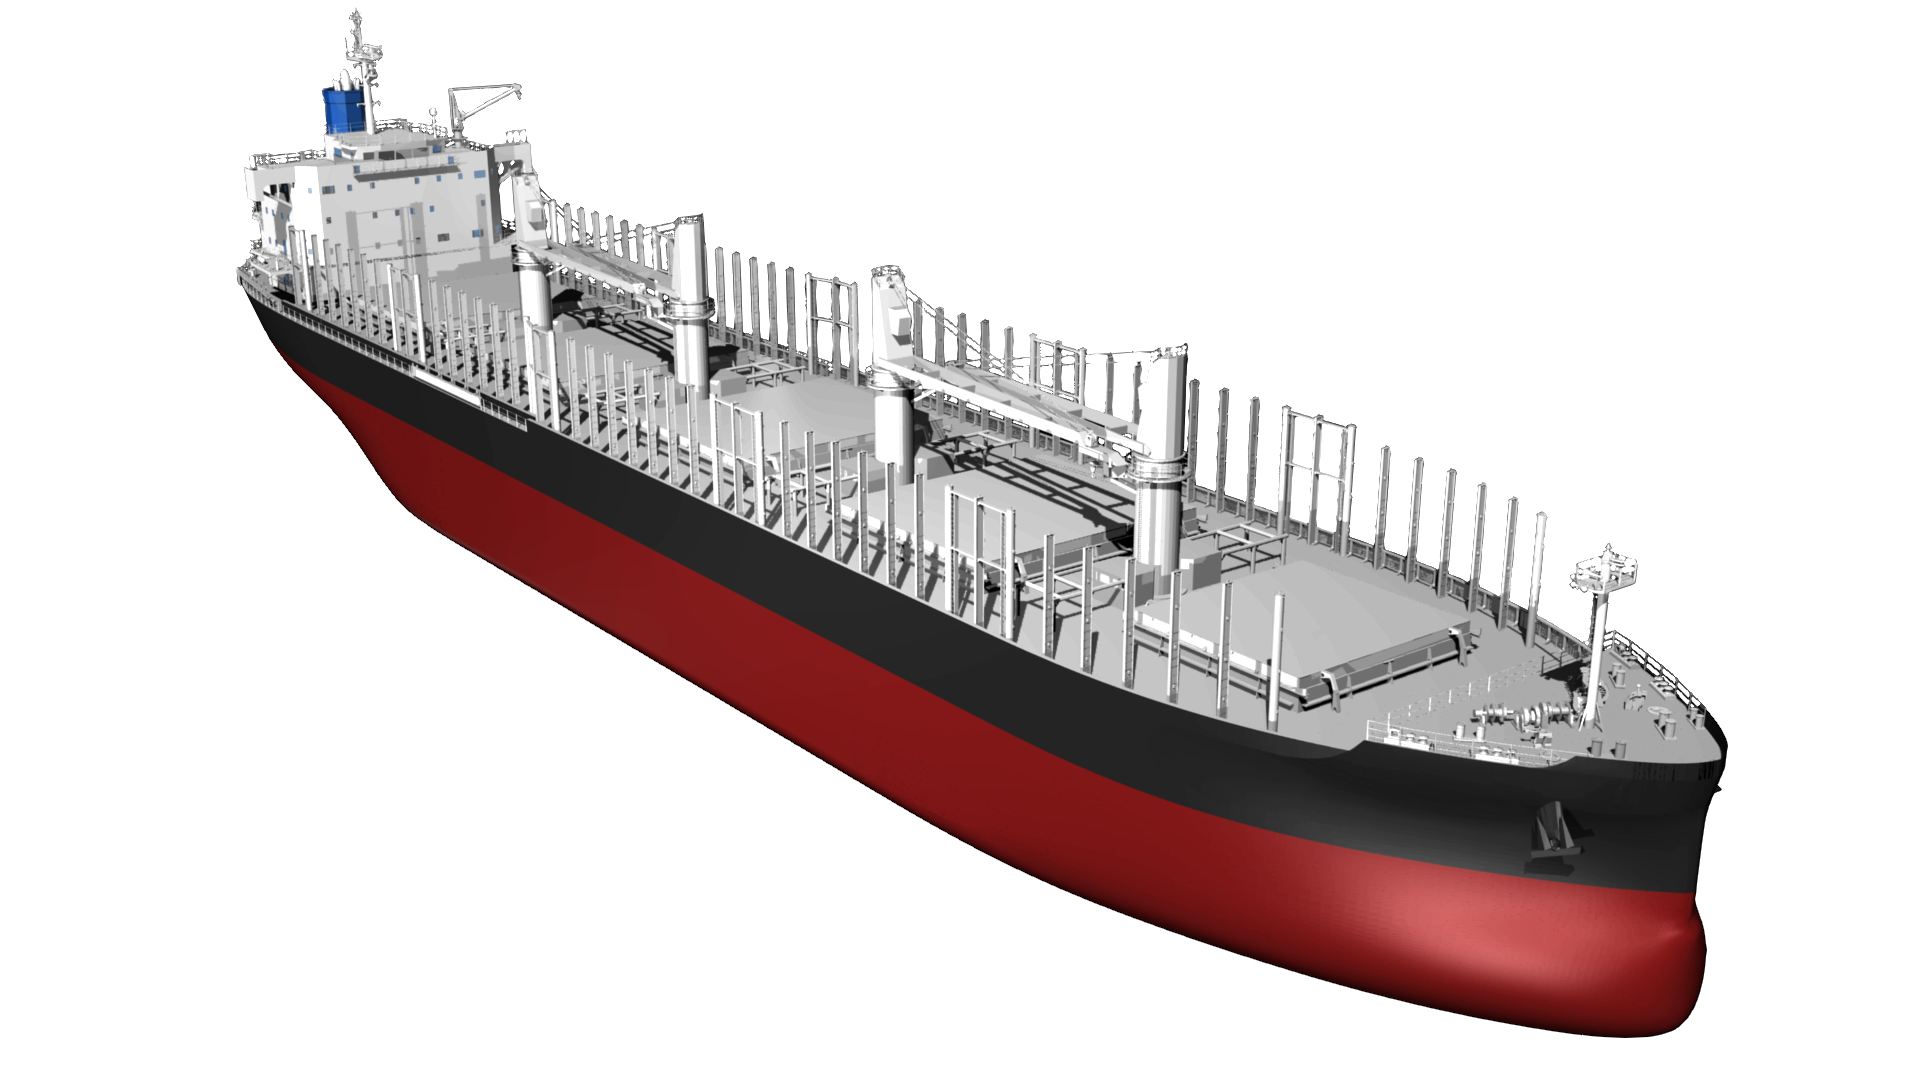 Tsuneishi Pens First Order For New Bulker Type - Cargo Ship PNG HD